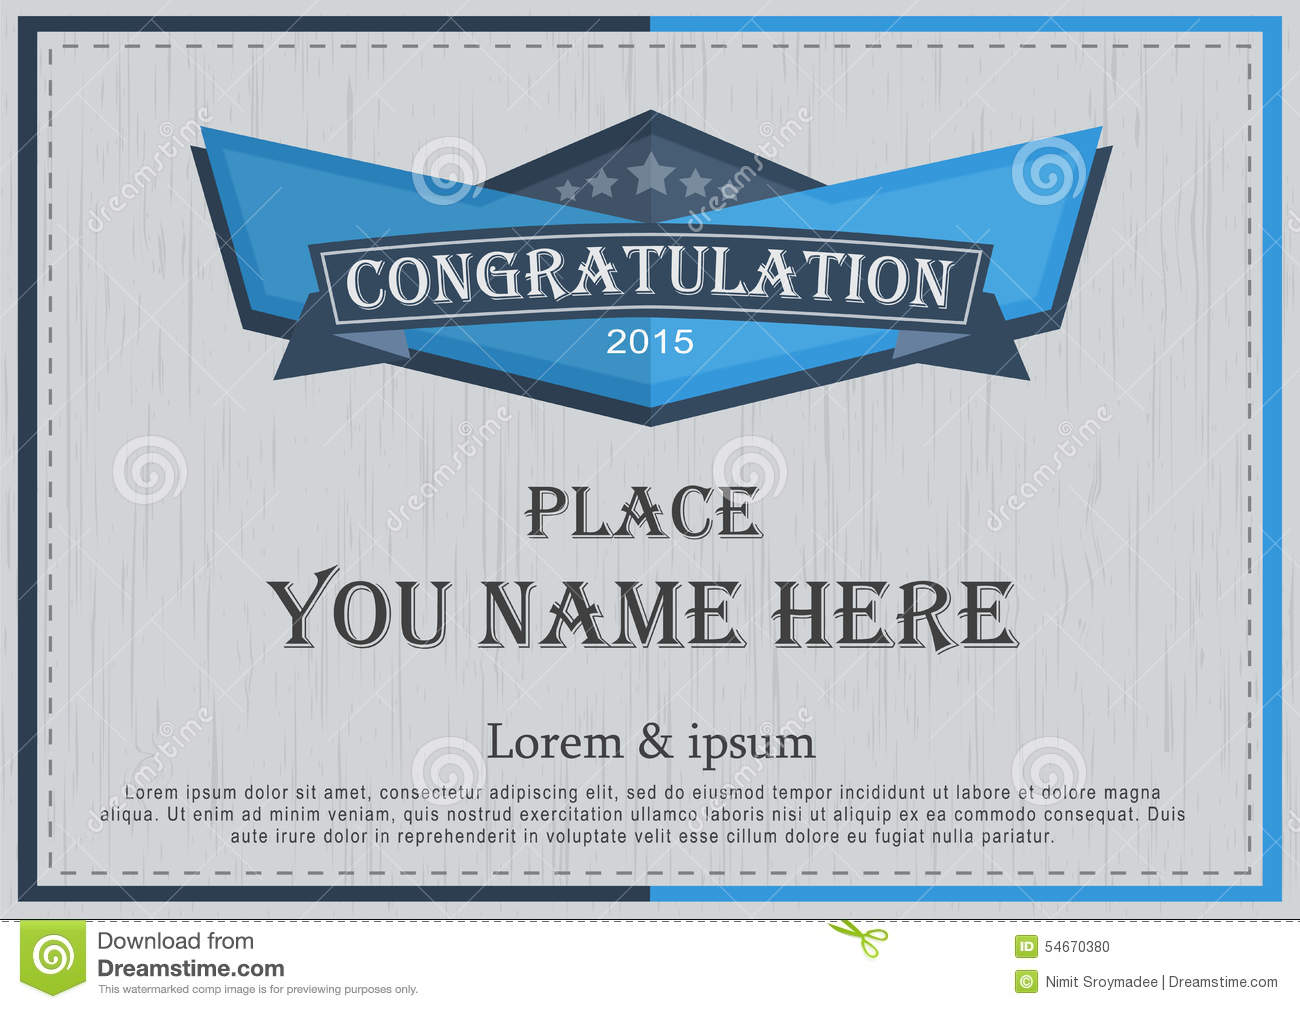 congratulation frame retro background design template